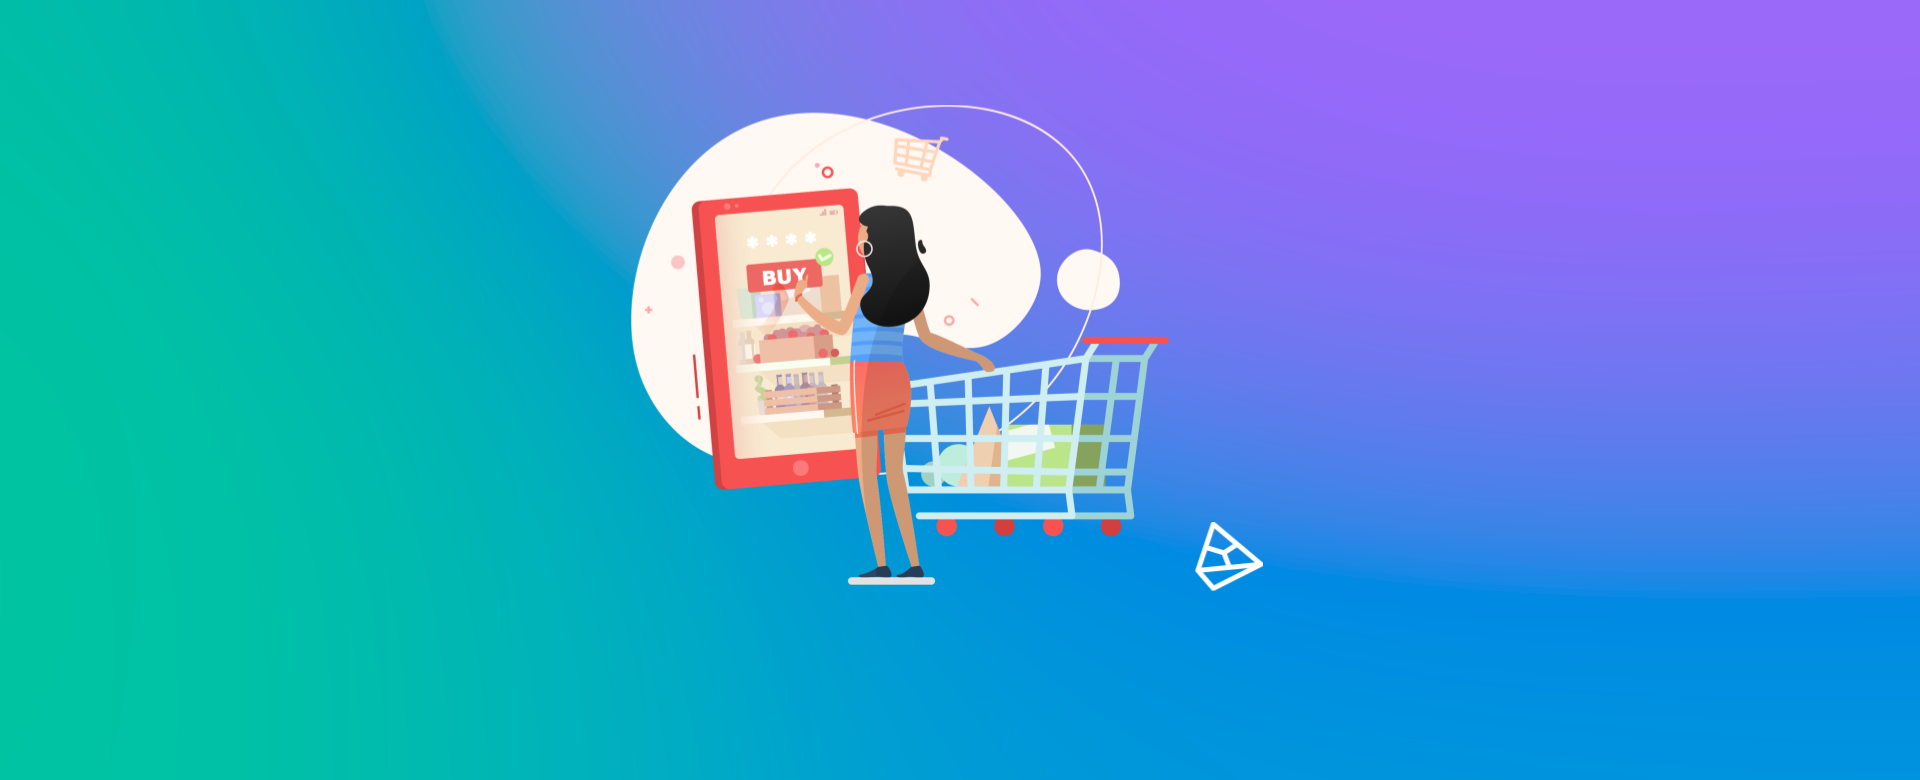 Como Integrar Sua Plataforma de E-commerce no Pareto.io?